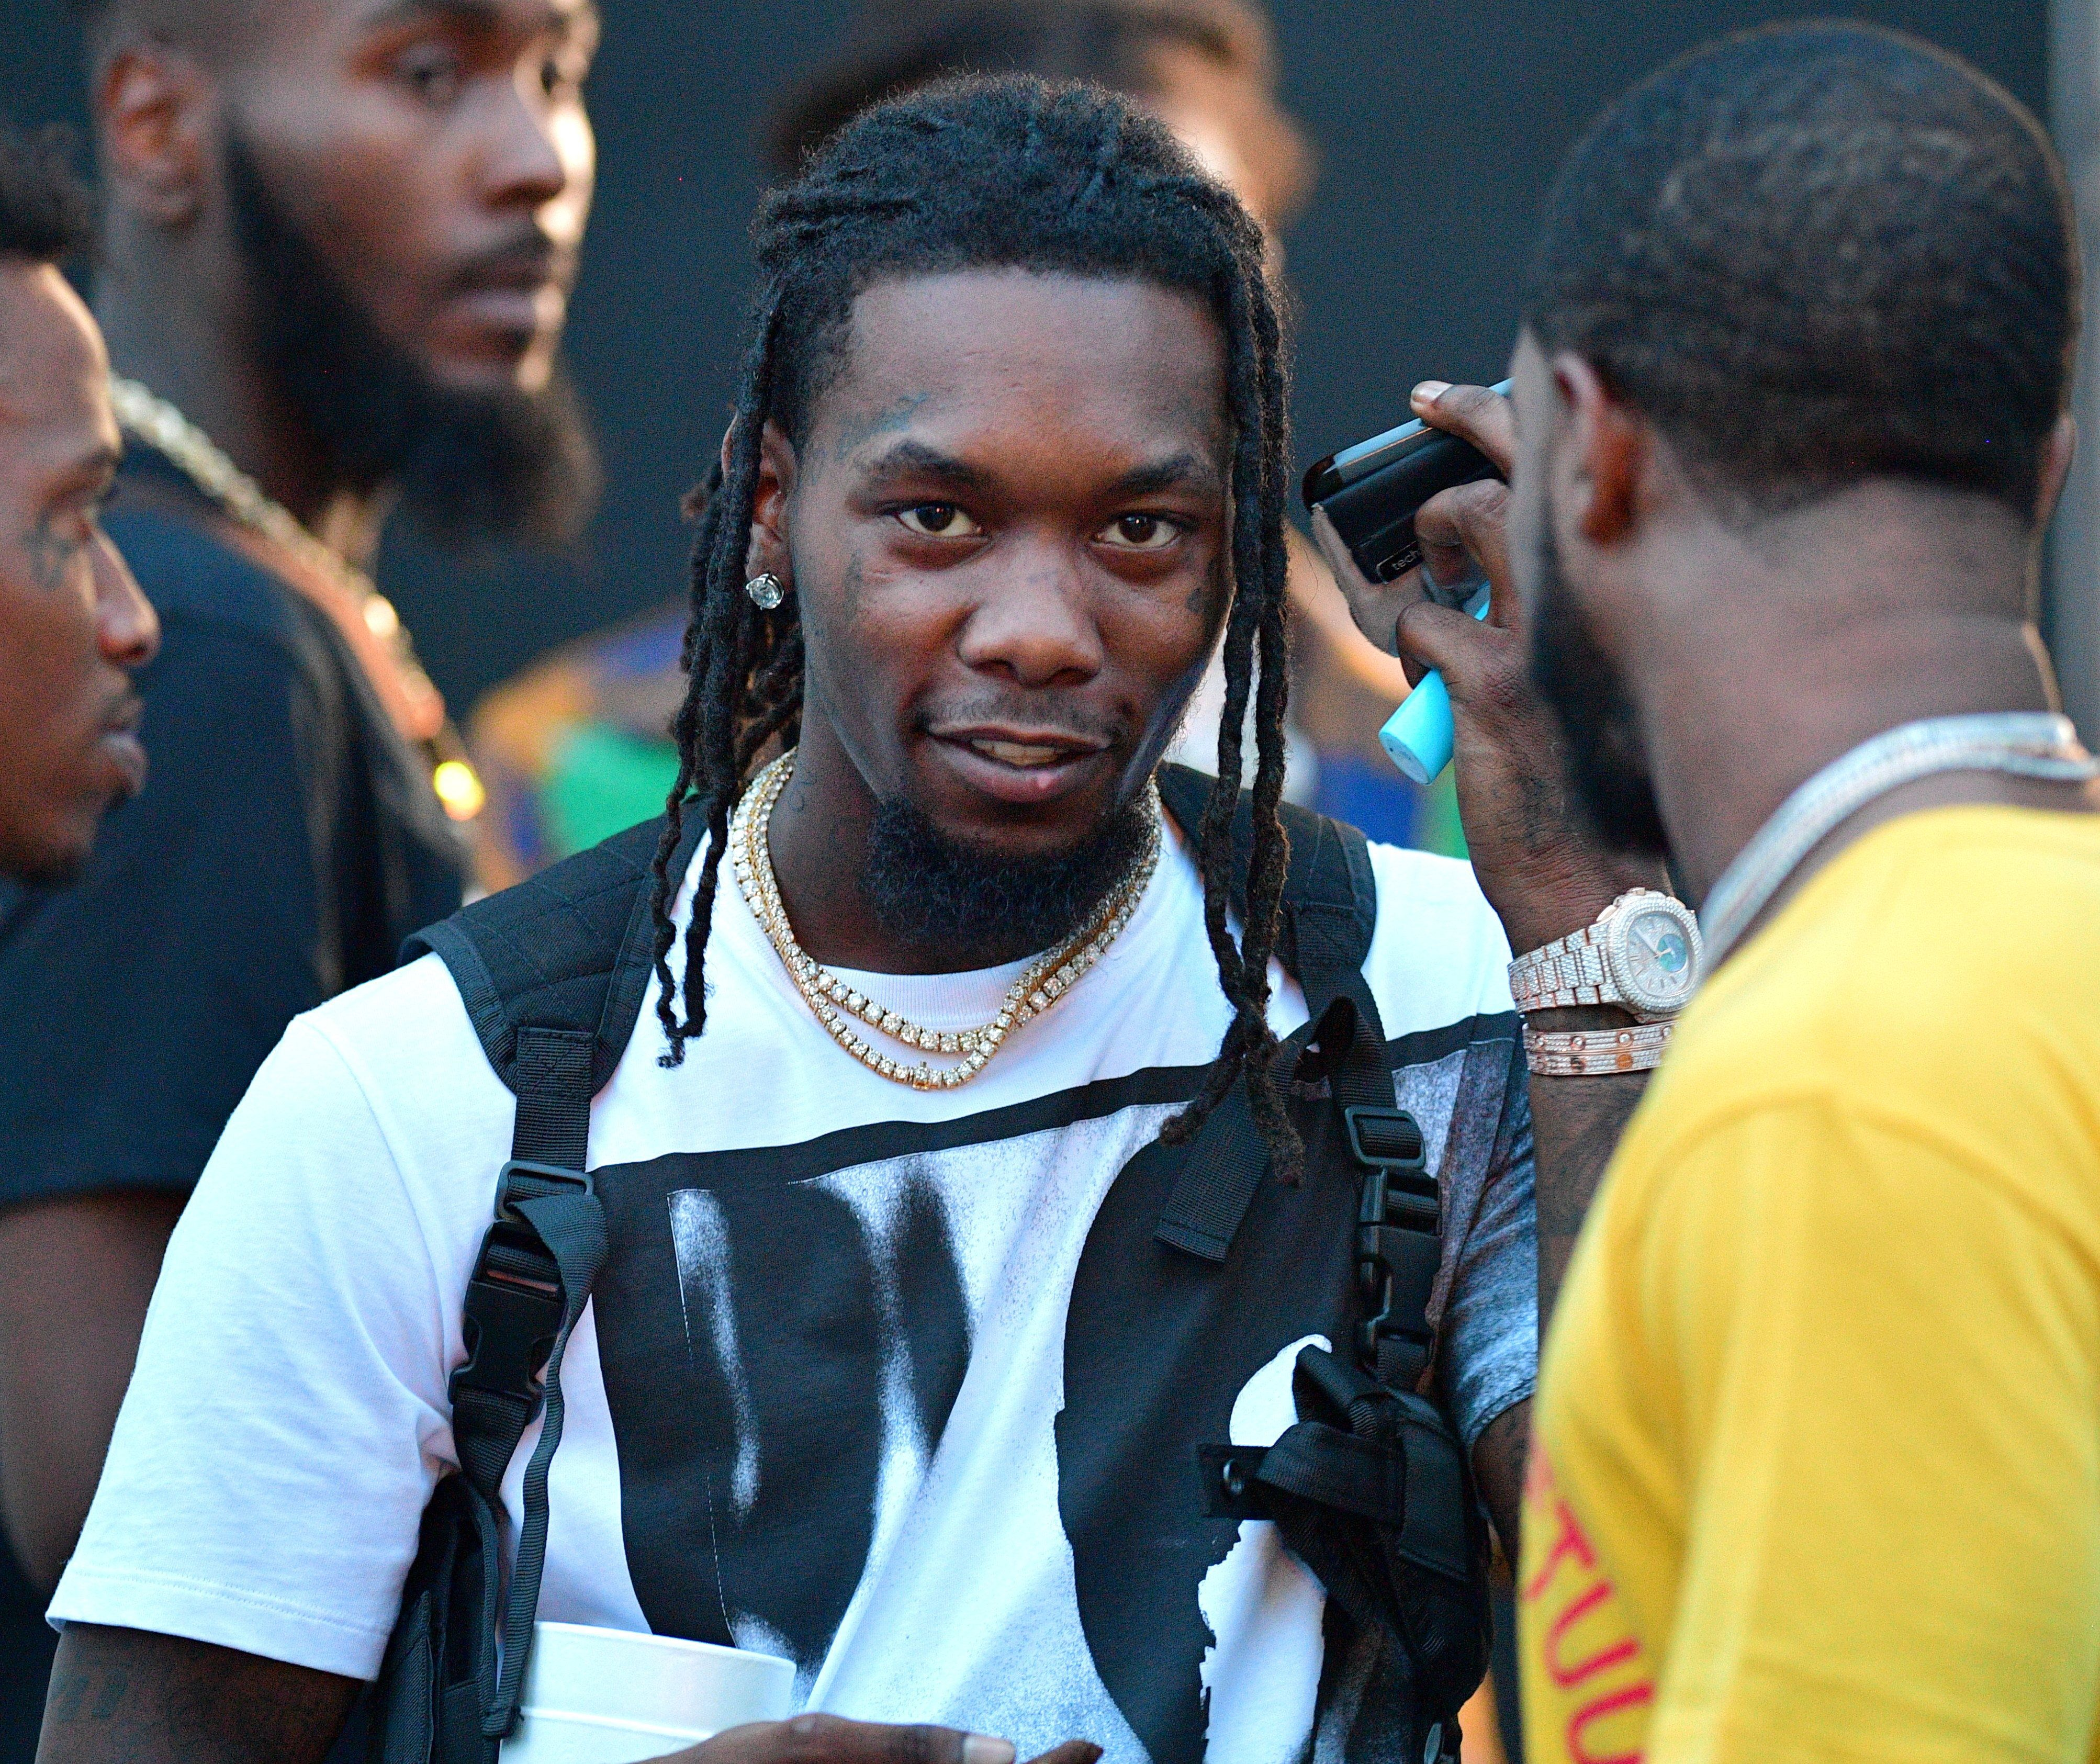 Migos Rapper Offset Arrested In Georgia On Felony Gun